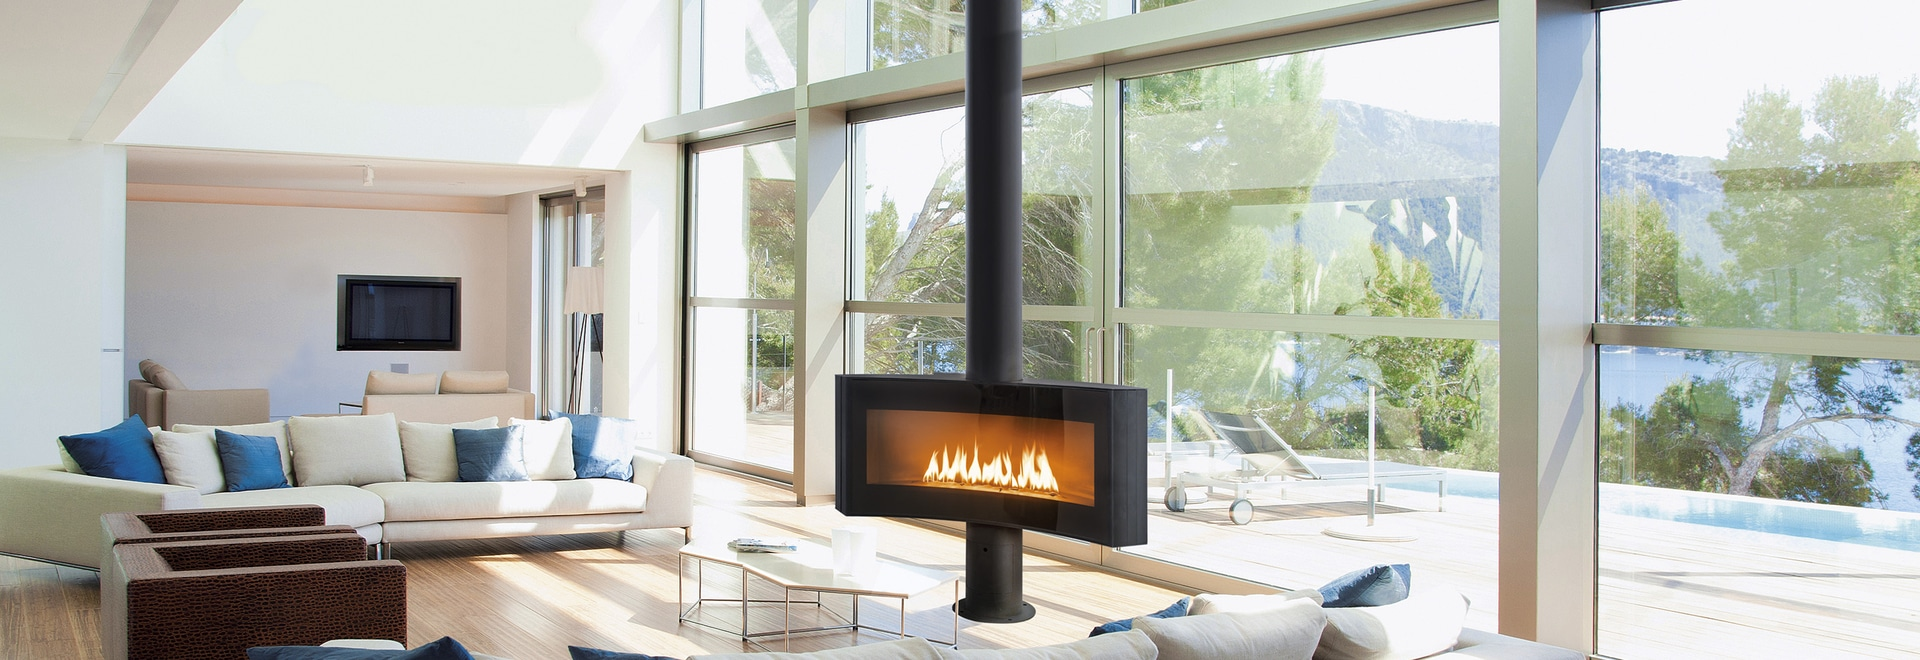 Curvifocus: the world's first fireplace with a curved face, created by Dominique Imbert for Focus